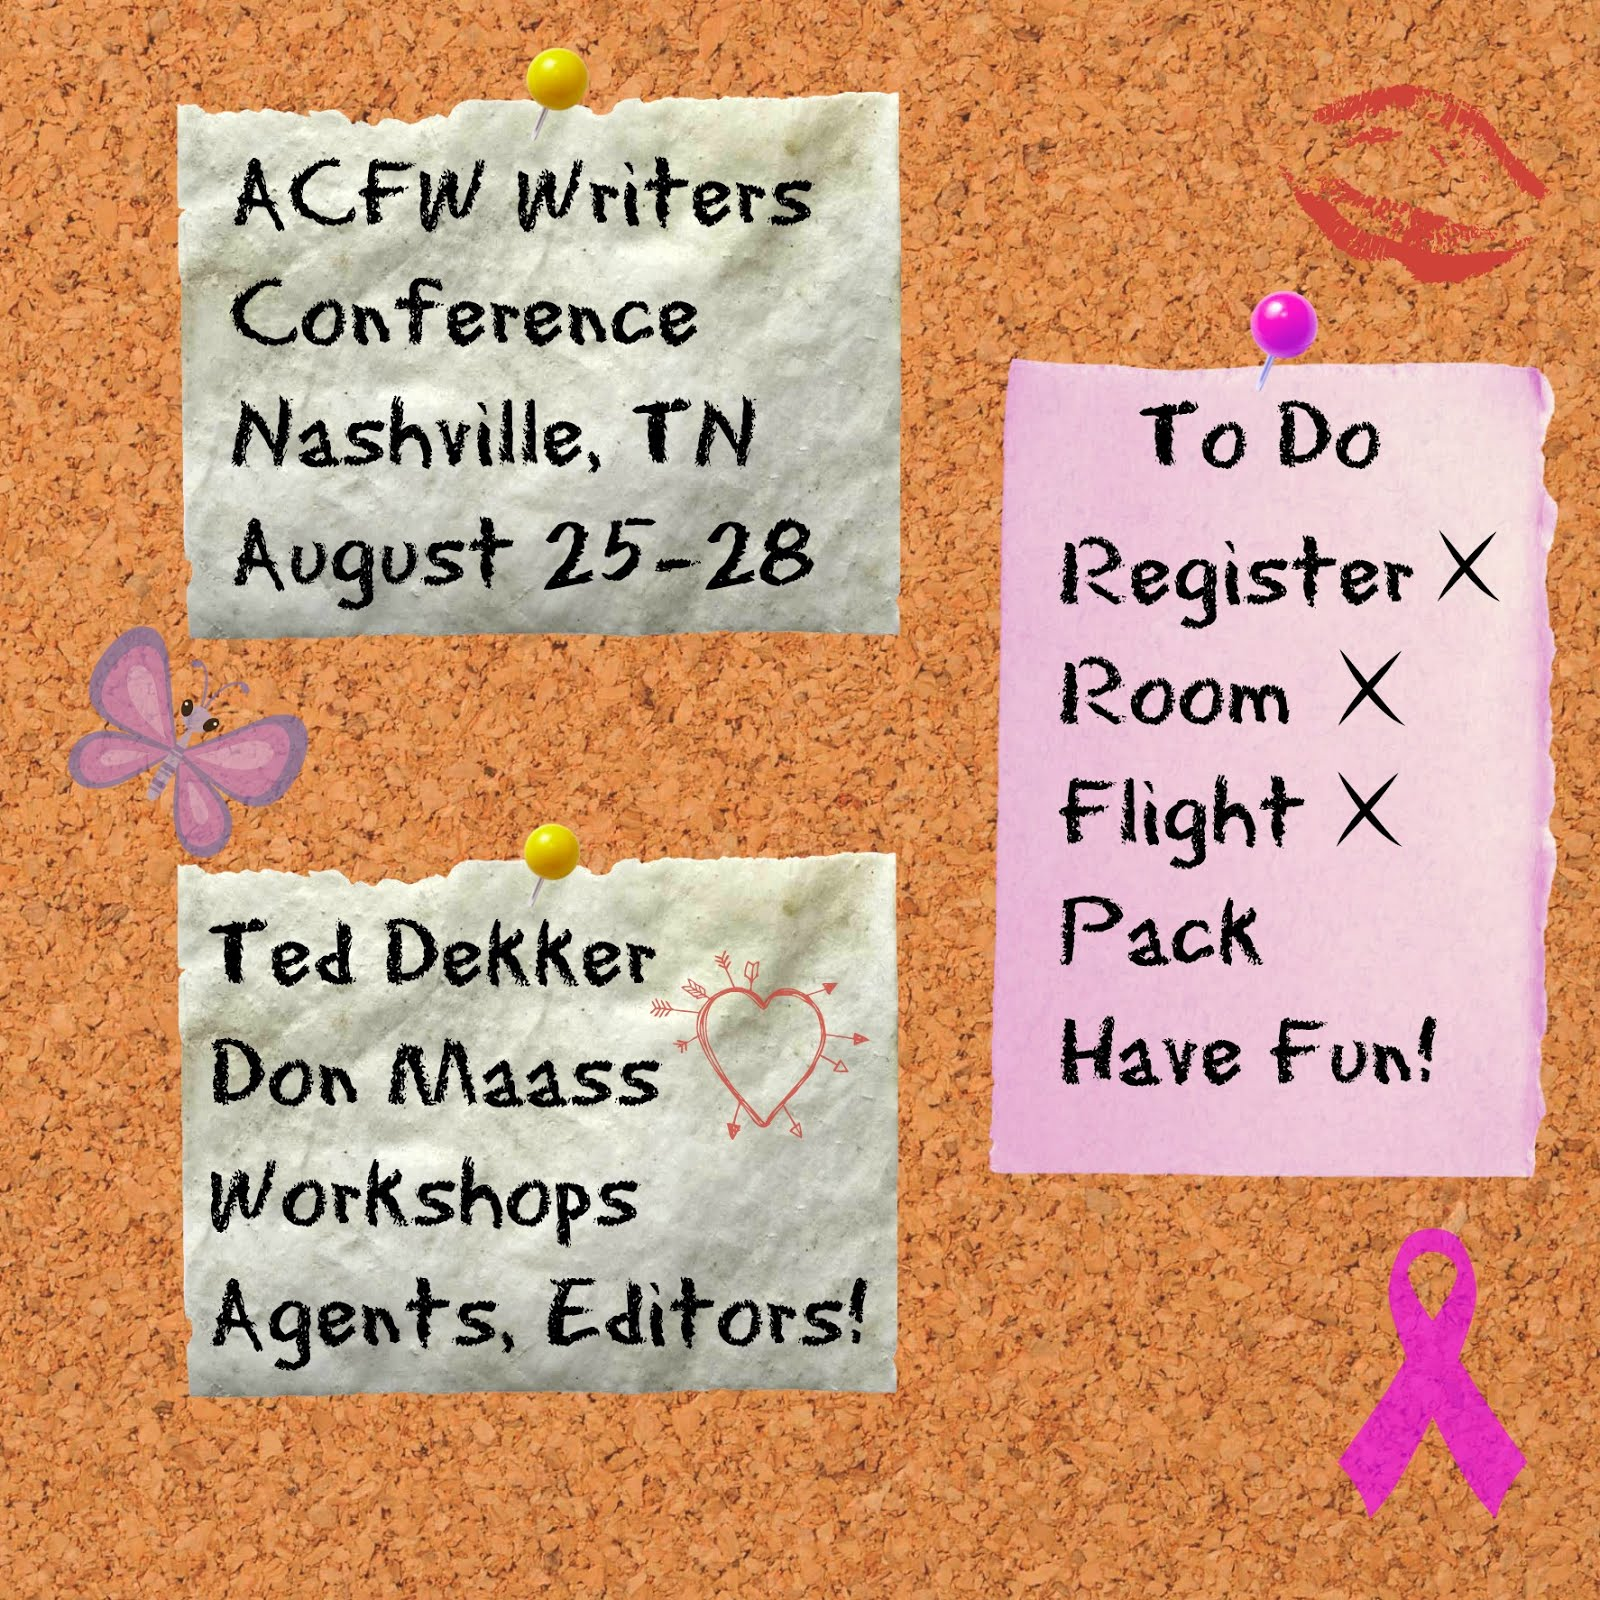 2016 ACFW Writers Conference